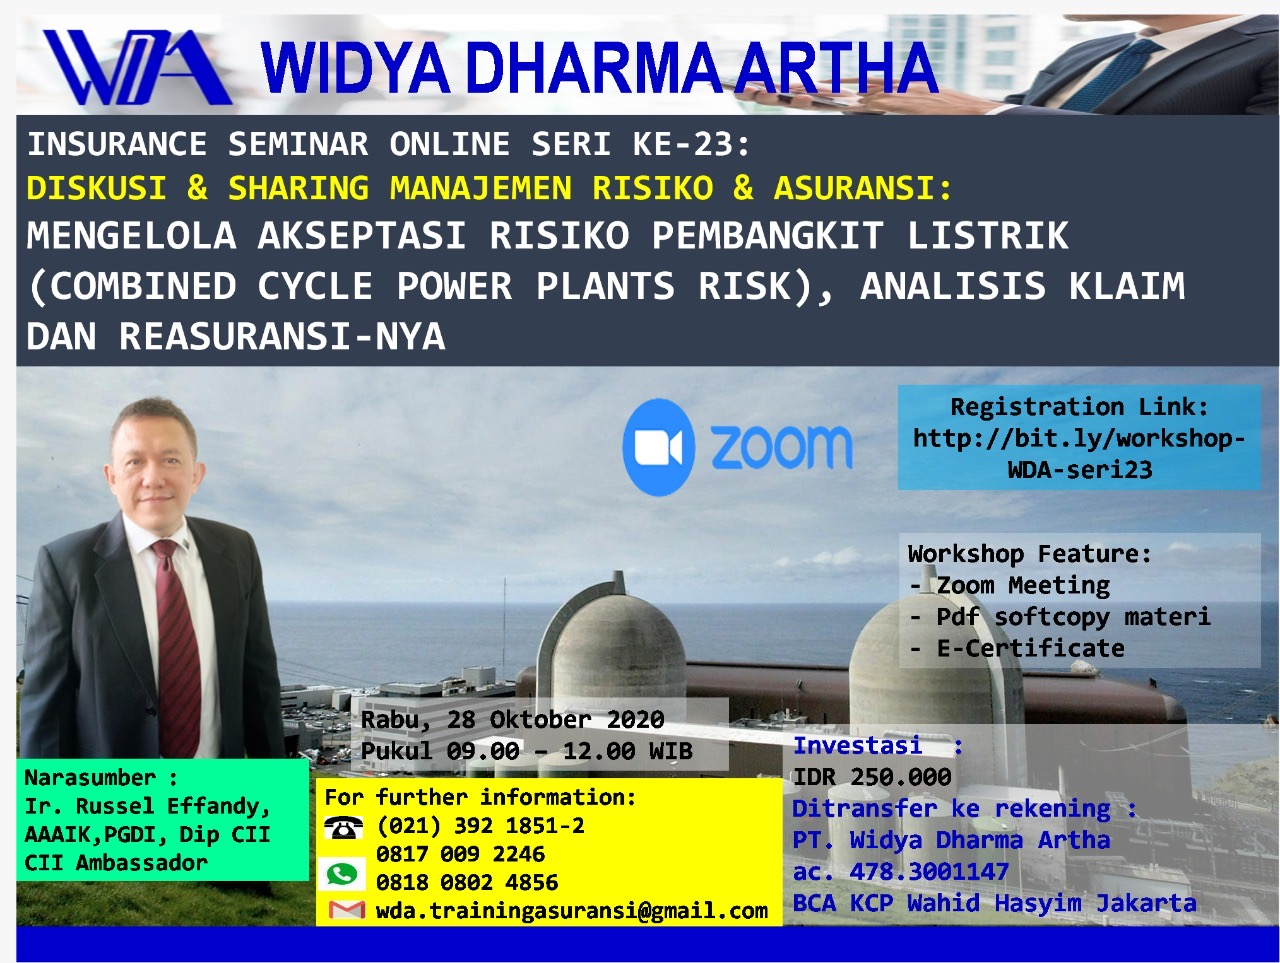 wda-ccpp-risks-and-insurance